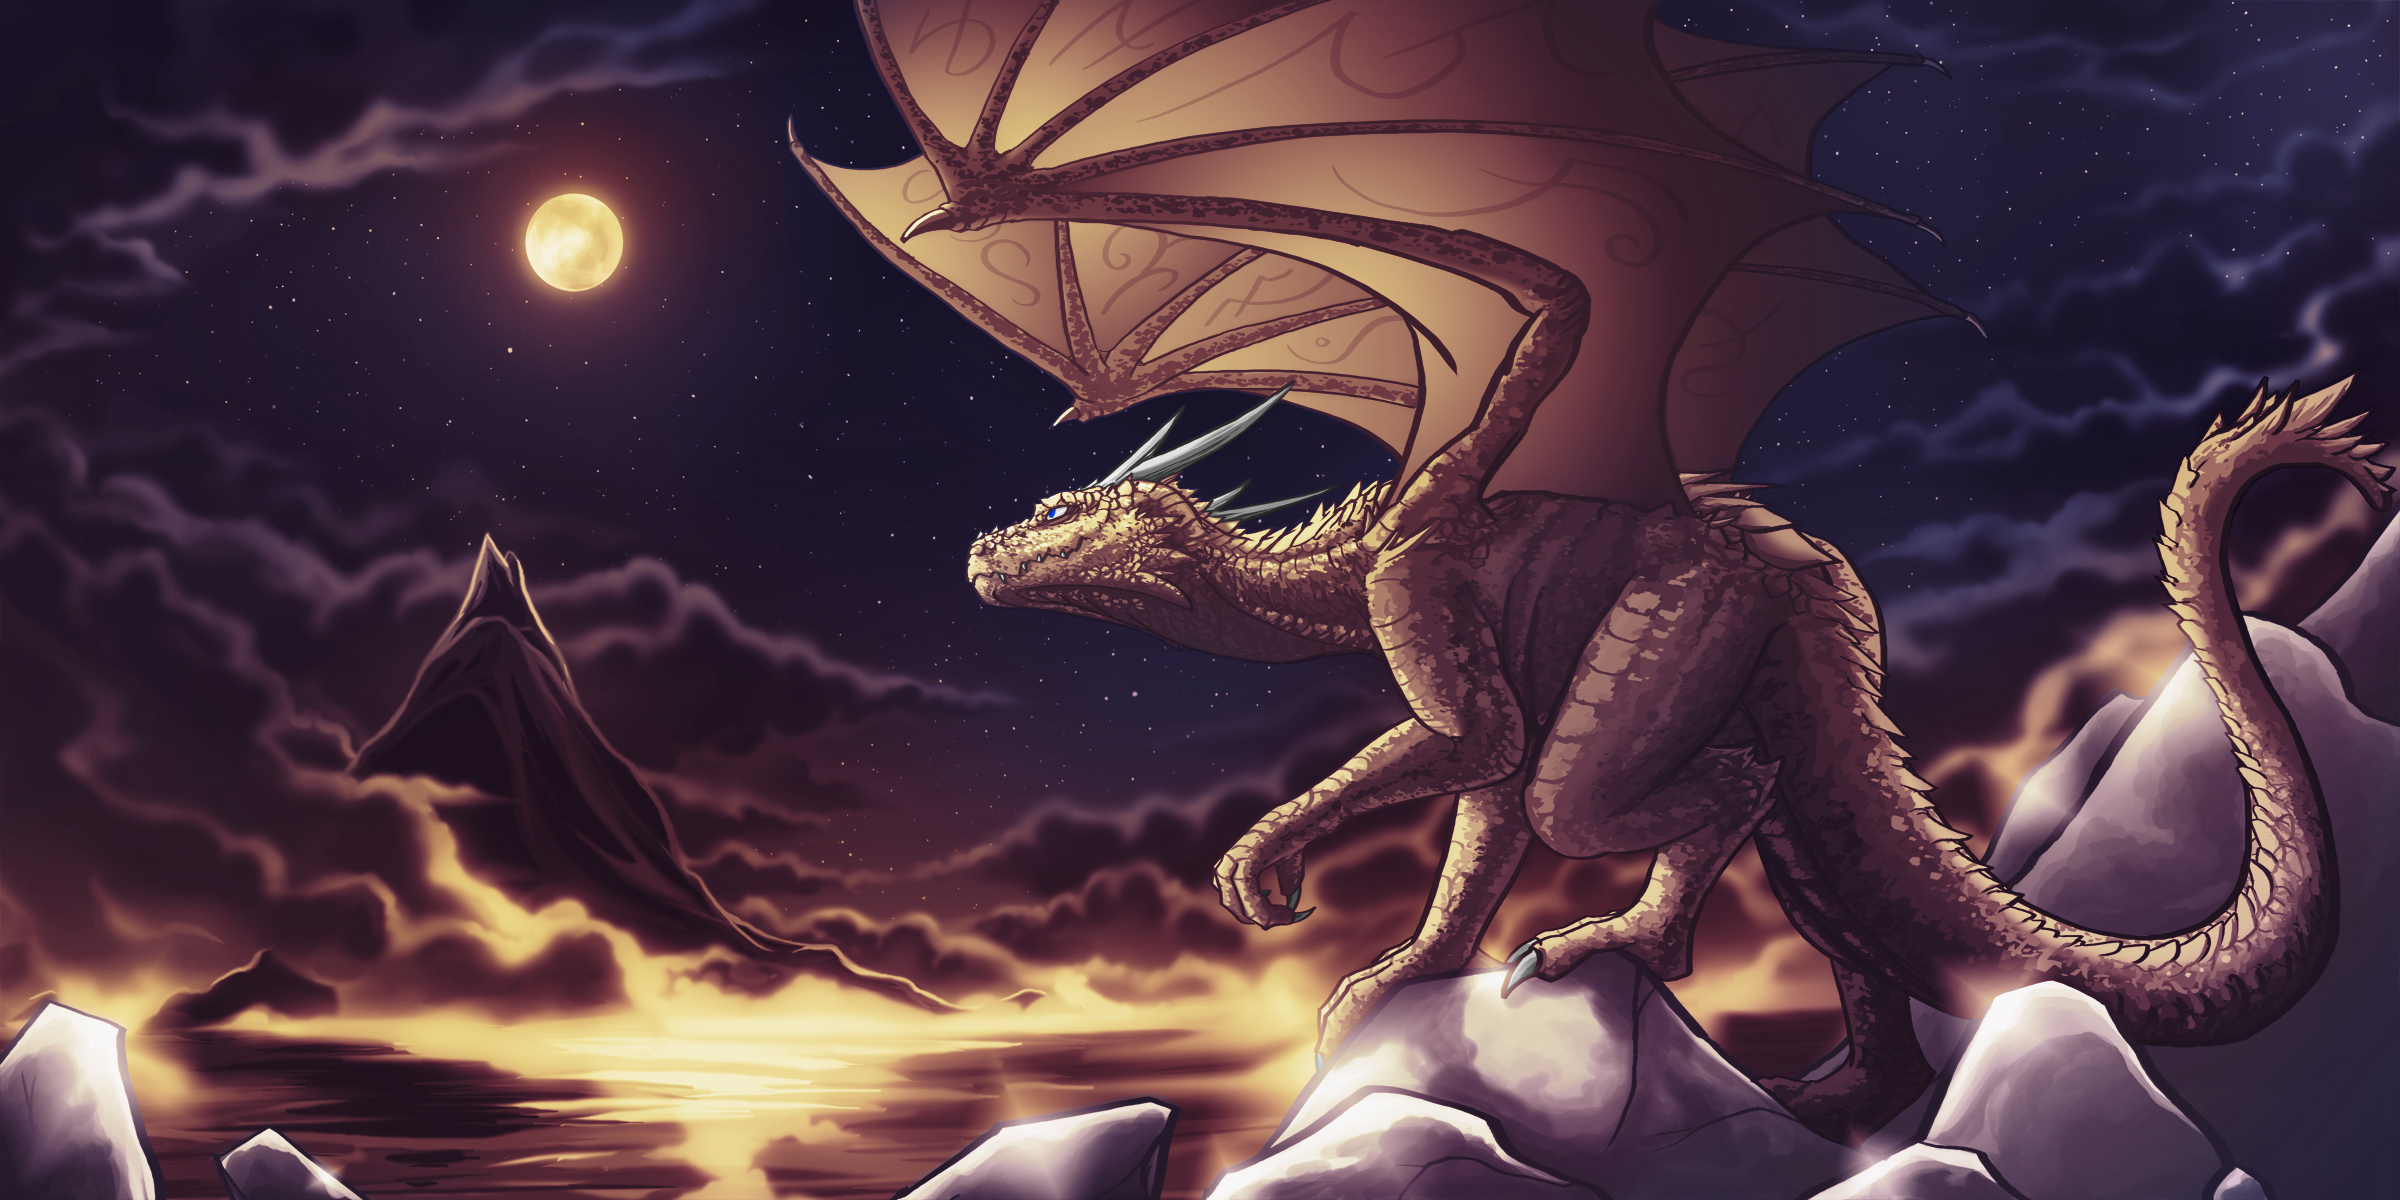 141620 download wallpaper Dragon, Clouds, Art, Sky, Night, Mountains screensavers and pictures for free